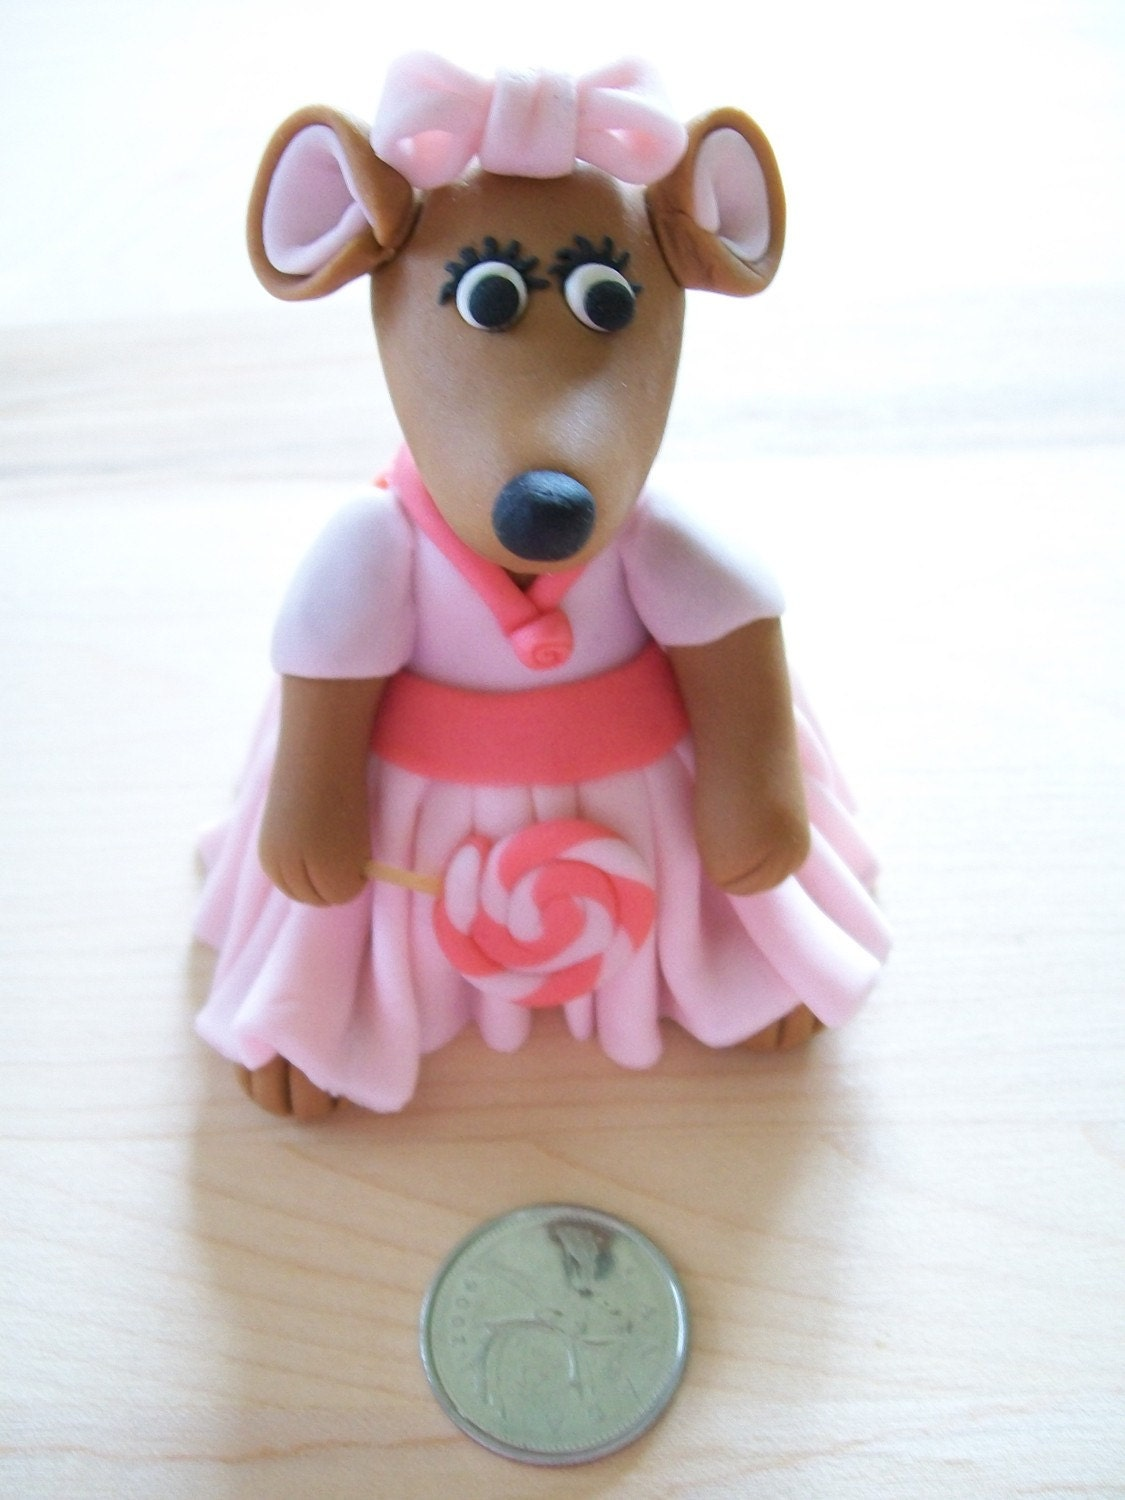 Fondant Girl Mouse Cake Topper. From FondantFads